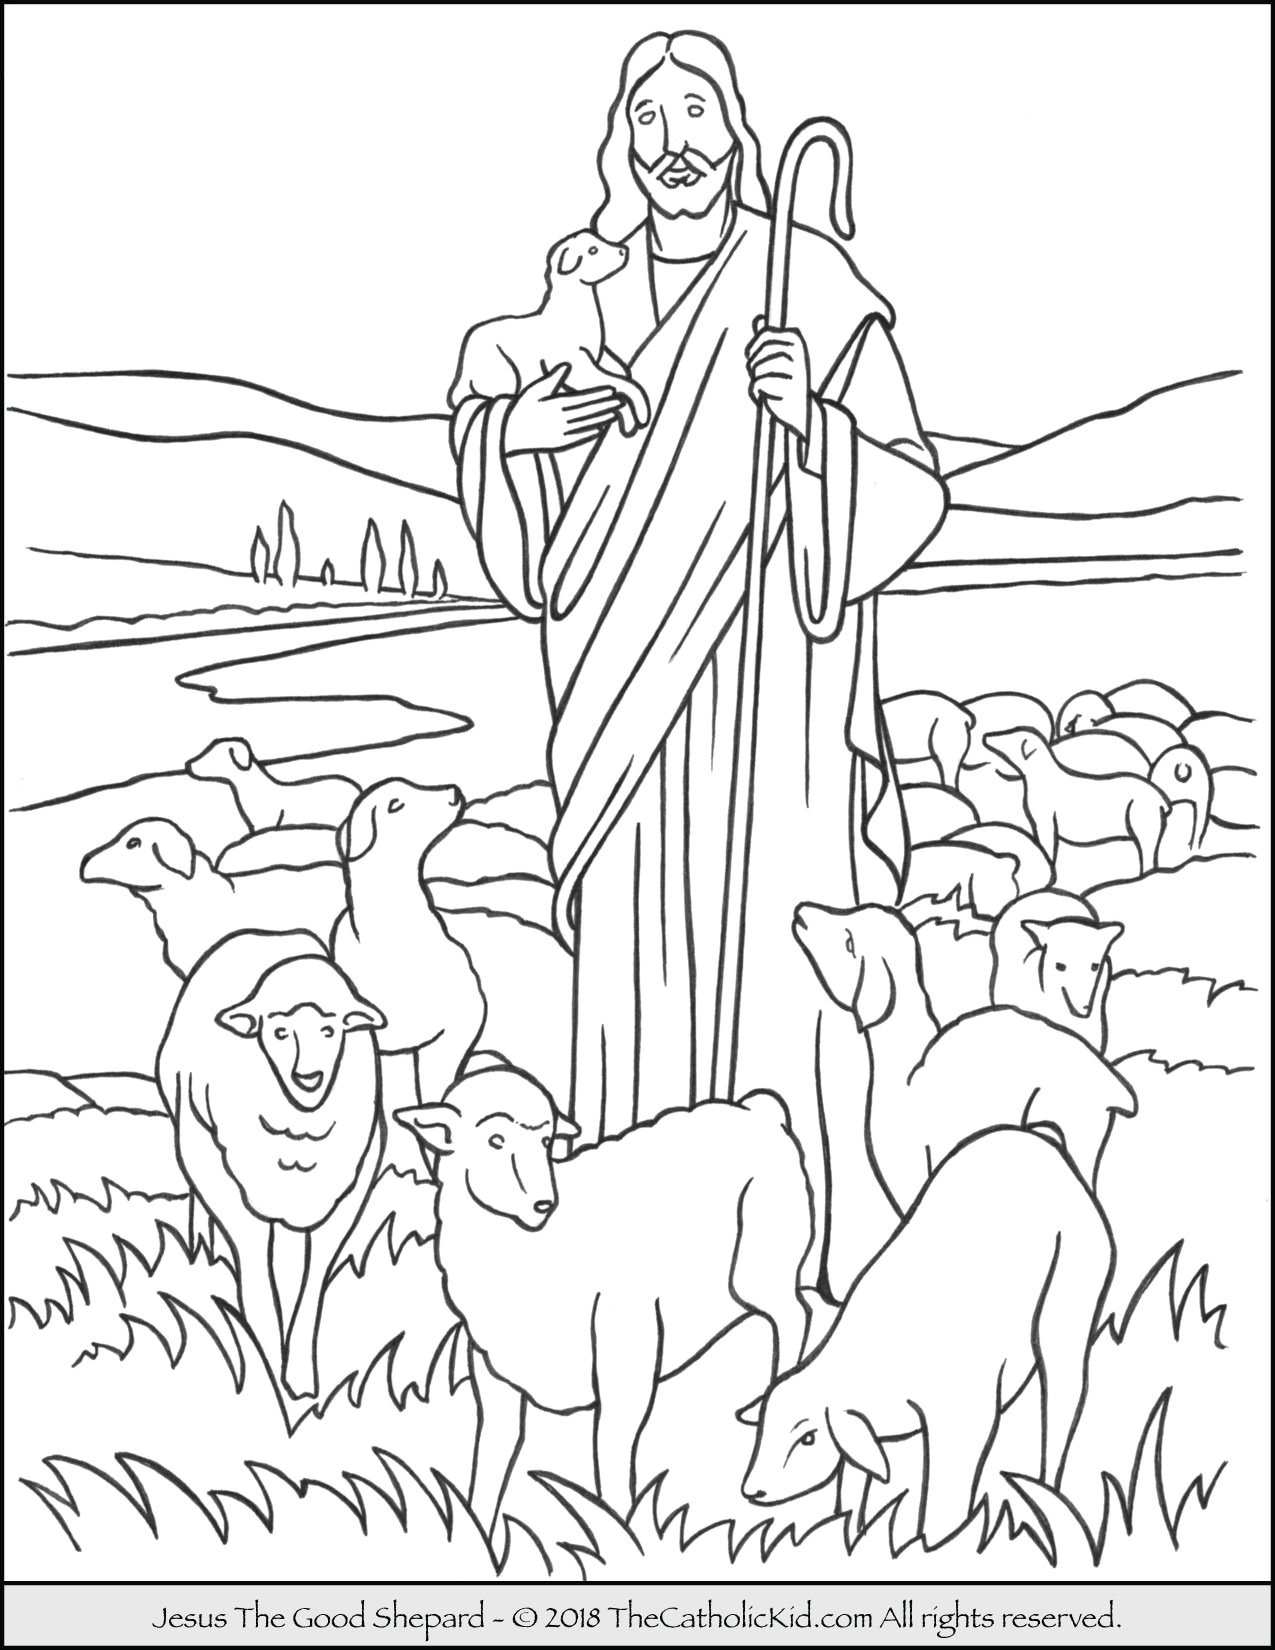 Coloring Pages Of Jesus the Good Shepherd Jesus the Good Shepard Coloring Page